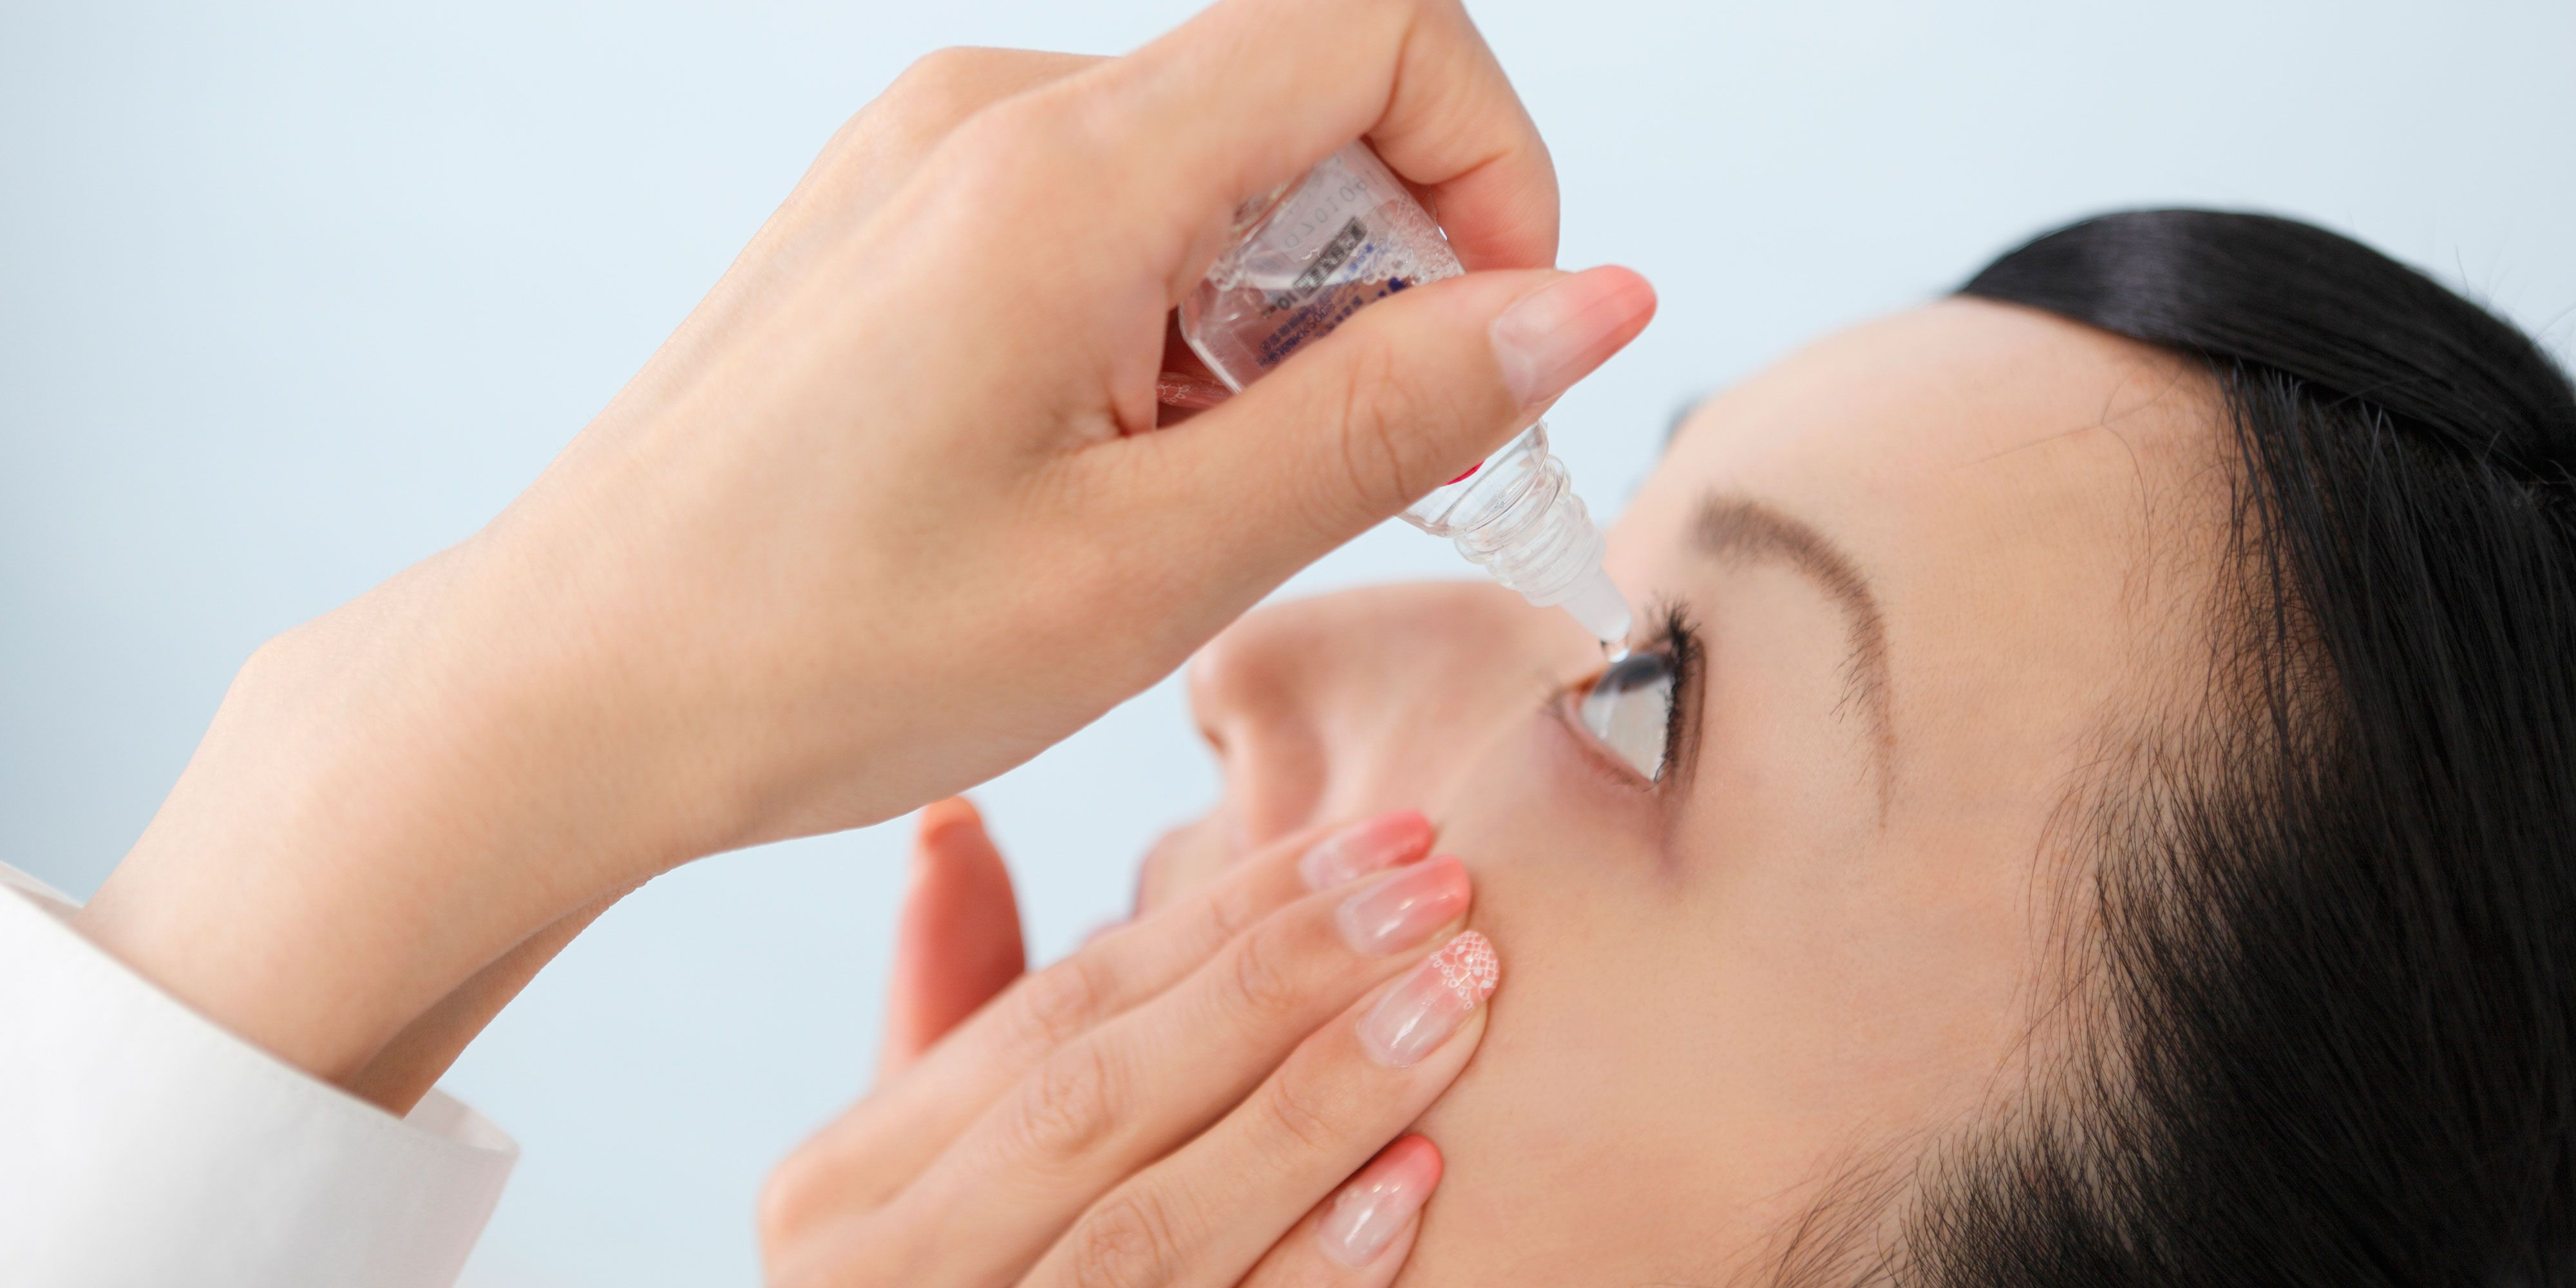 Chloramphenicol eye drops and ointment